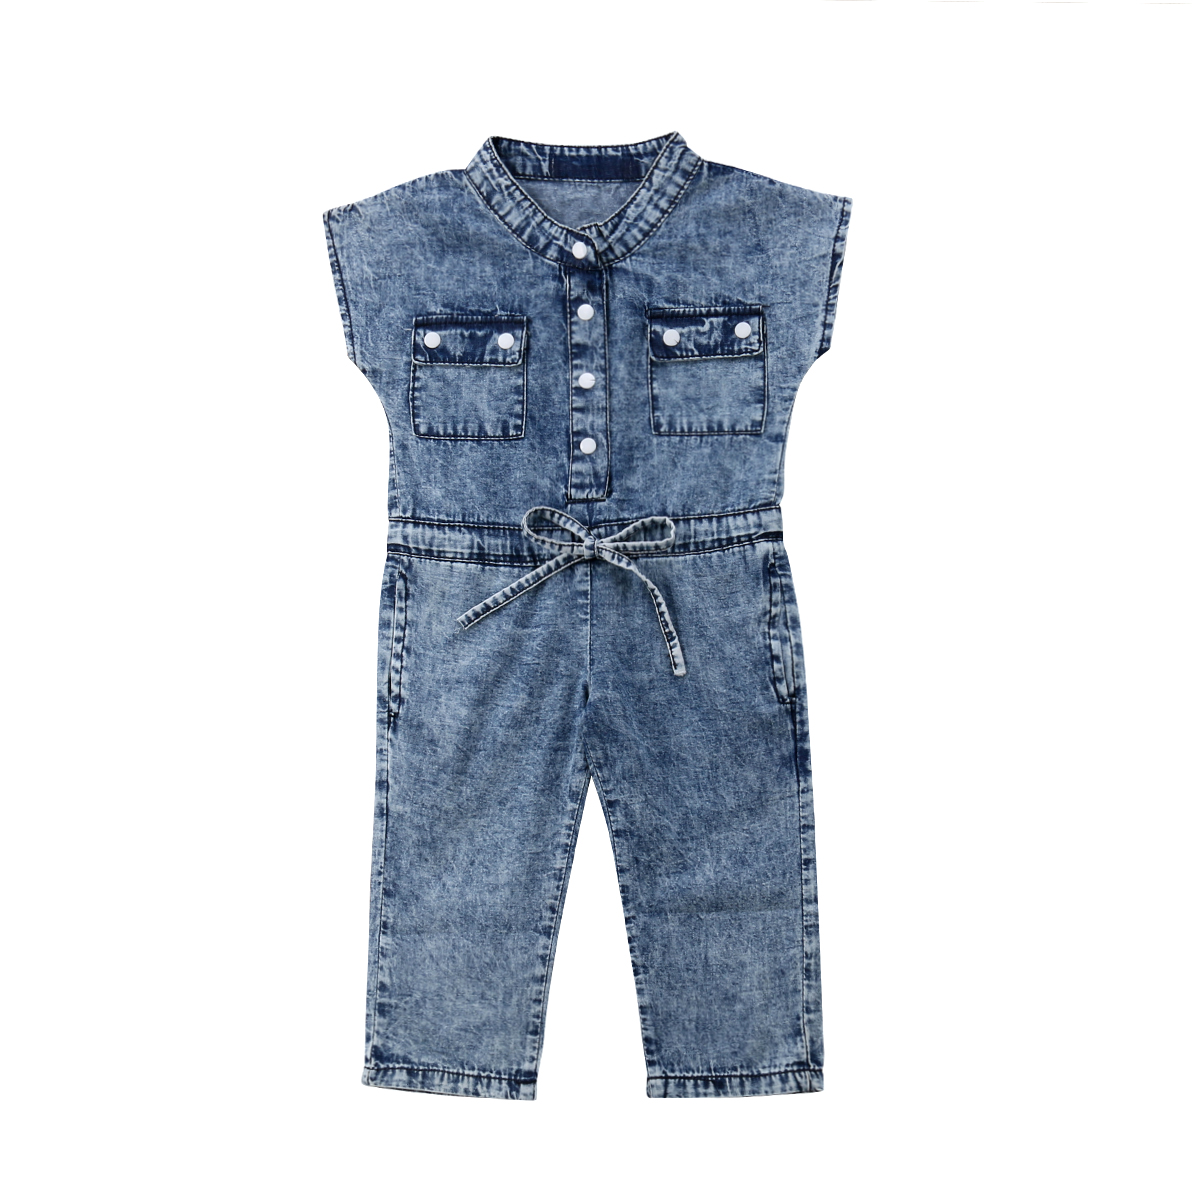 79dc839562a6 Details about 2019 Kids Baby Girl Denim Romper Newborn Long Jumpsuits Playsuit  Outfit Clothes